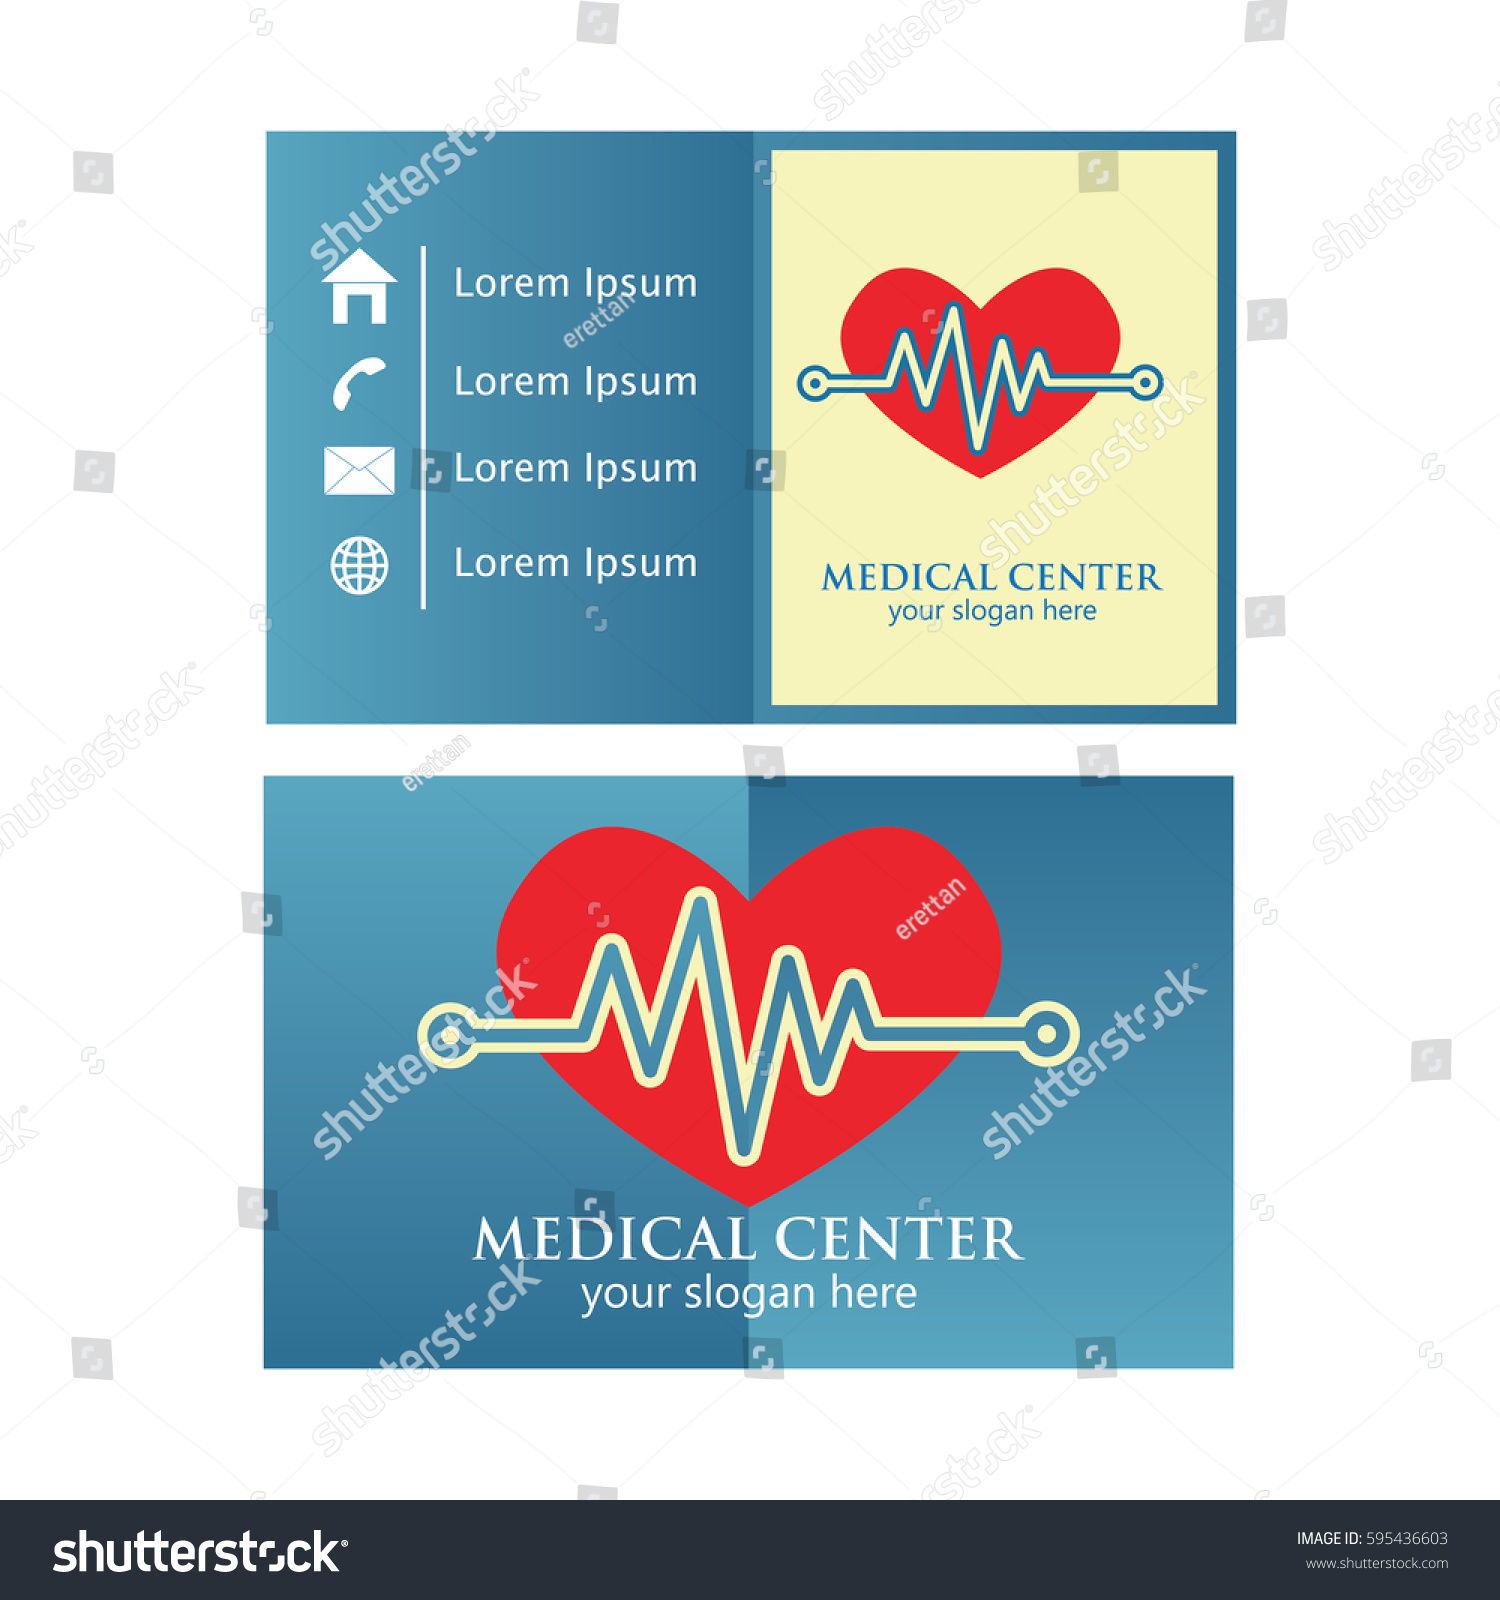 Medical Business Card Design Stock Photo (Photo, Vector ...